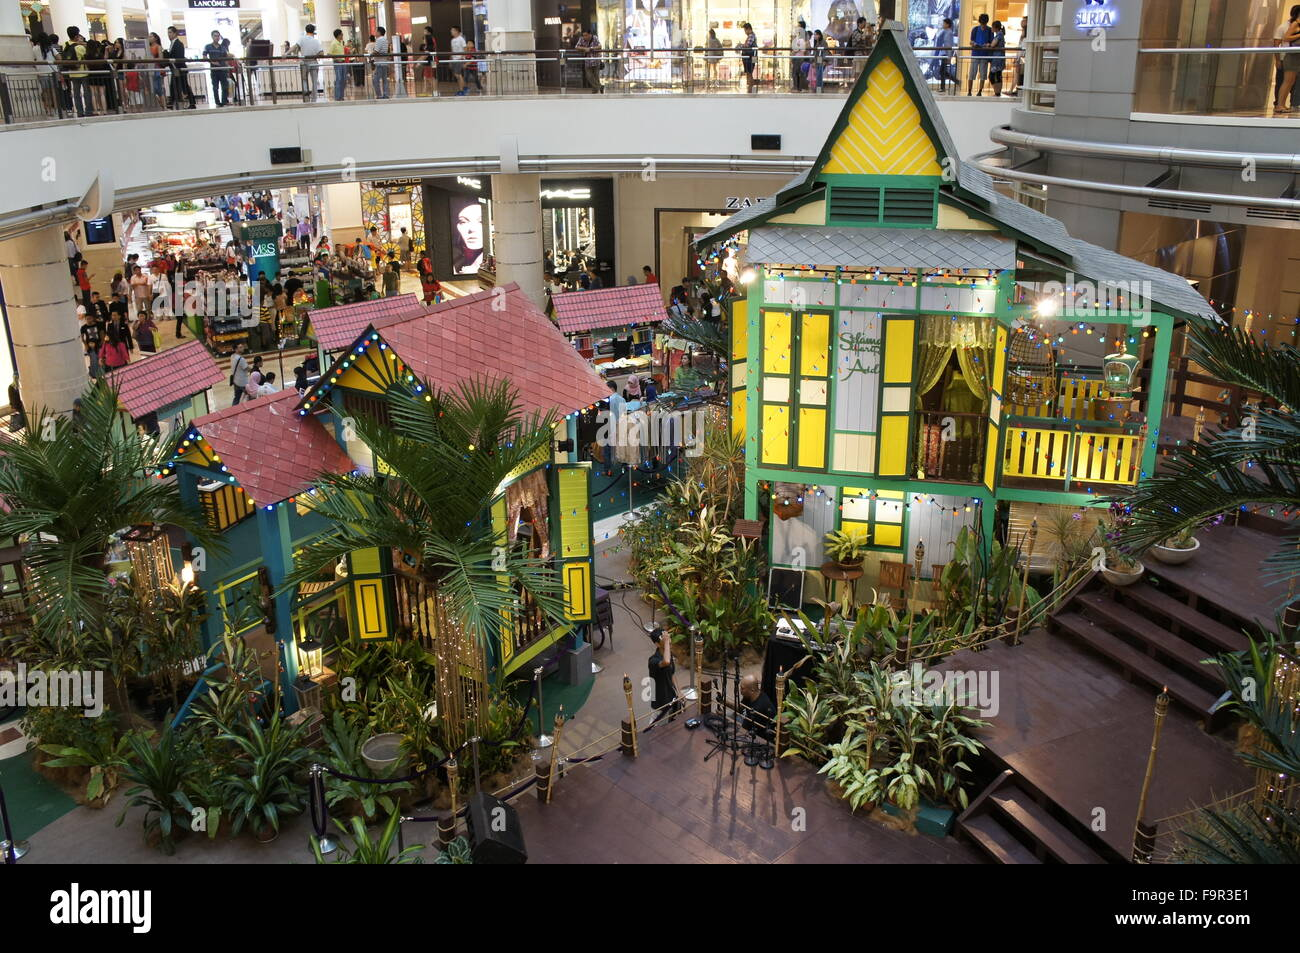 Amazing Australia Eid Al-Fitr Decorations - malaysian-shopping-mall-decorated-for-hari-raya-puasa-or-eid-ul-fitr-F9R3E1  You Should Have_517745 .jpg